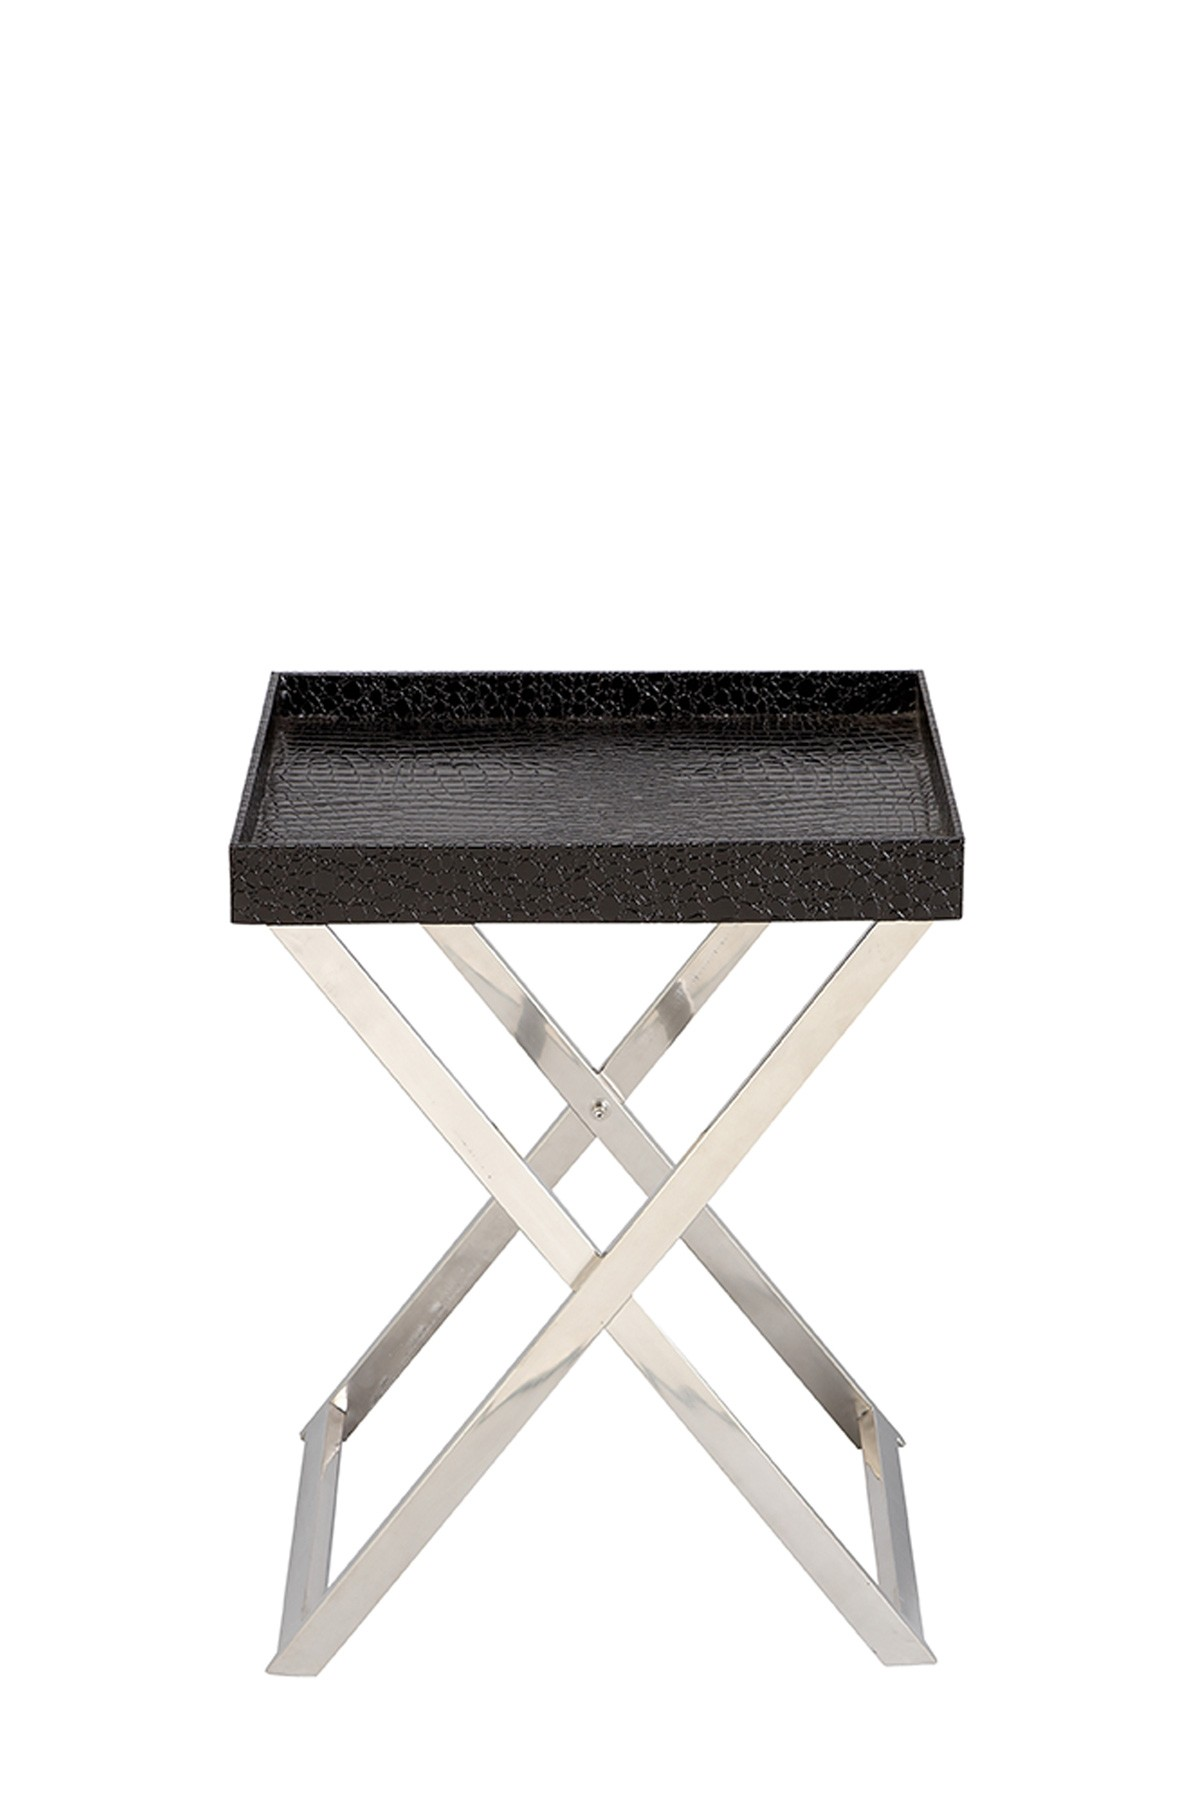 wheels awesome tables holder trays beyond black set solid wooden glamorous wood winsome plans tray sears dark folding natural tire target table canadian bath square accent full